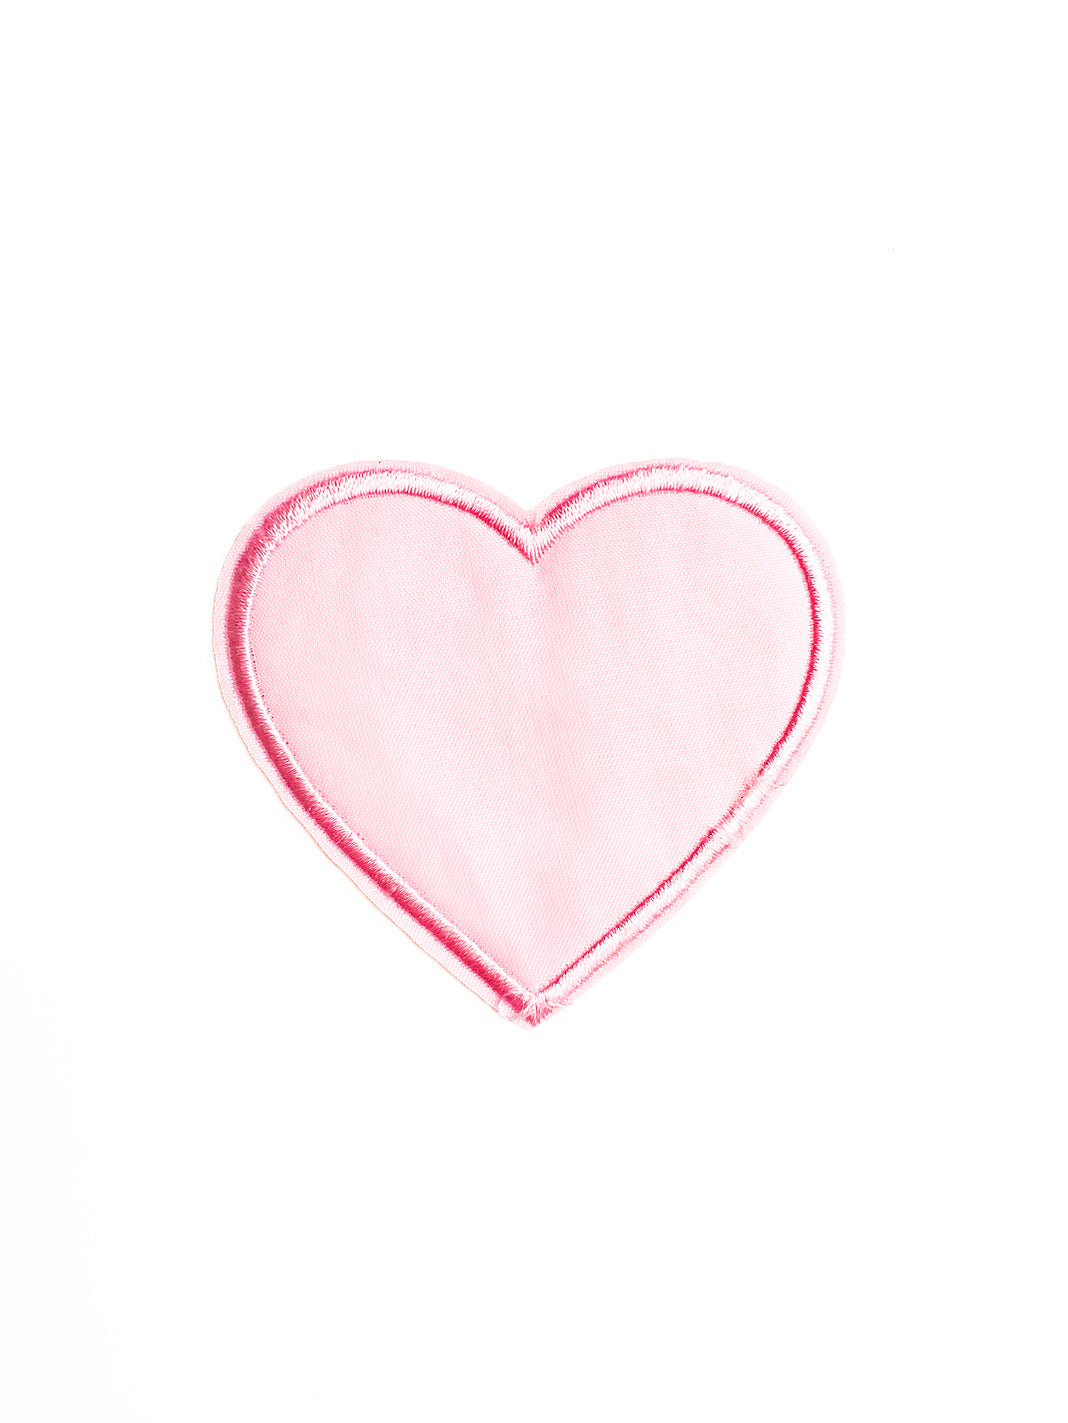 Large Pastel Pink Fabric Heart Iron On patch